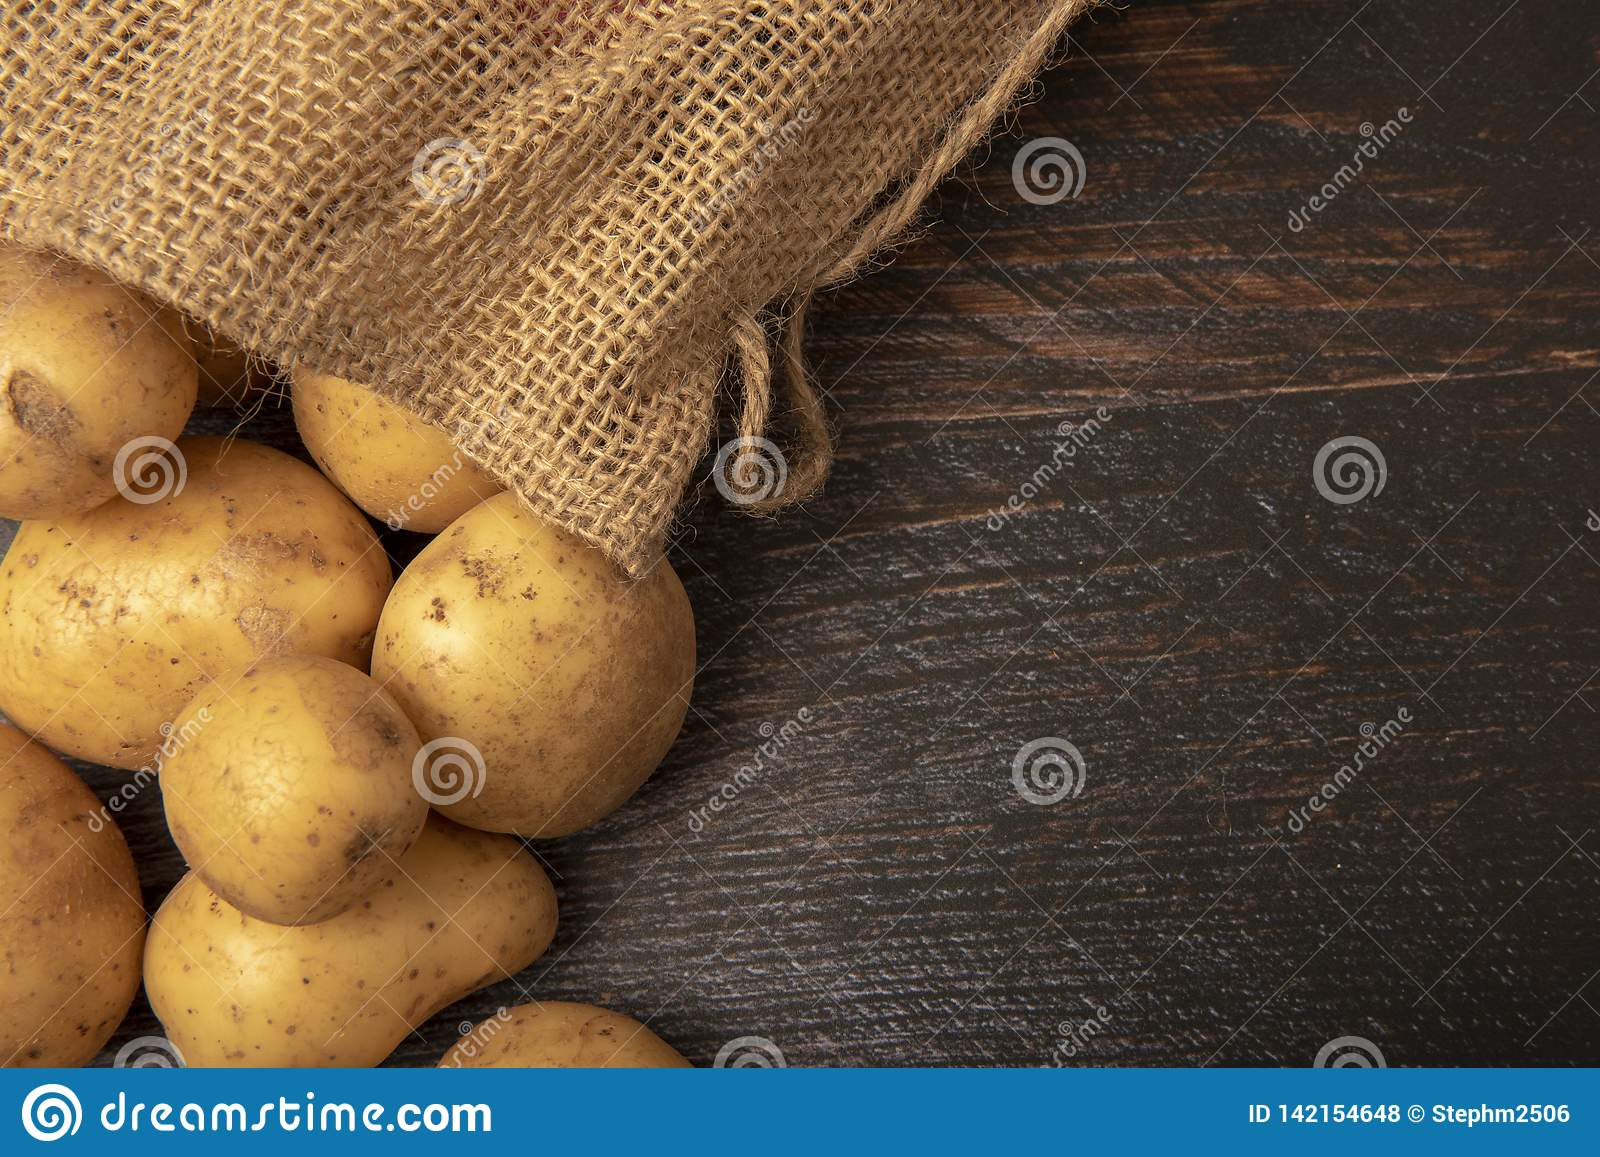 Sack of potatoes on wooden background